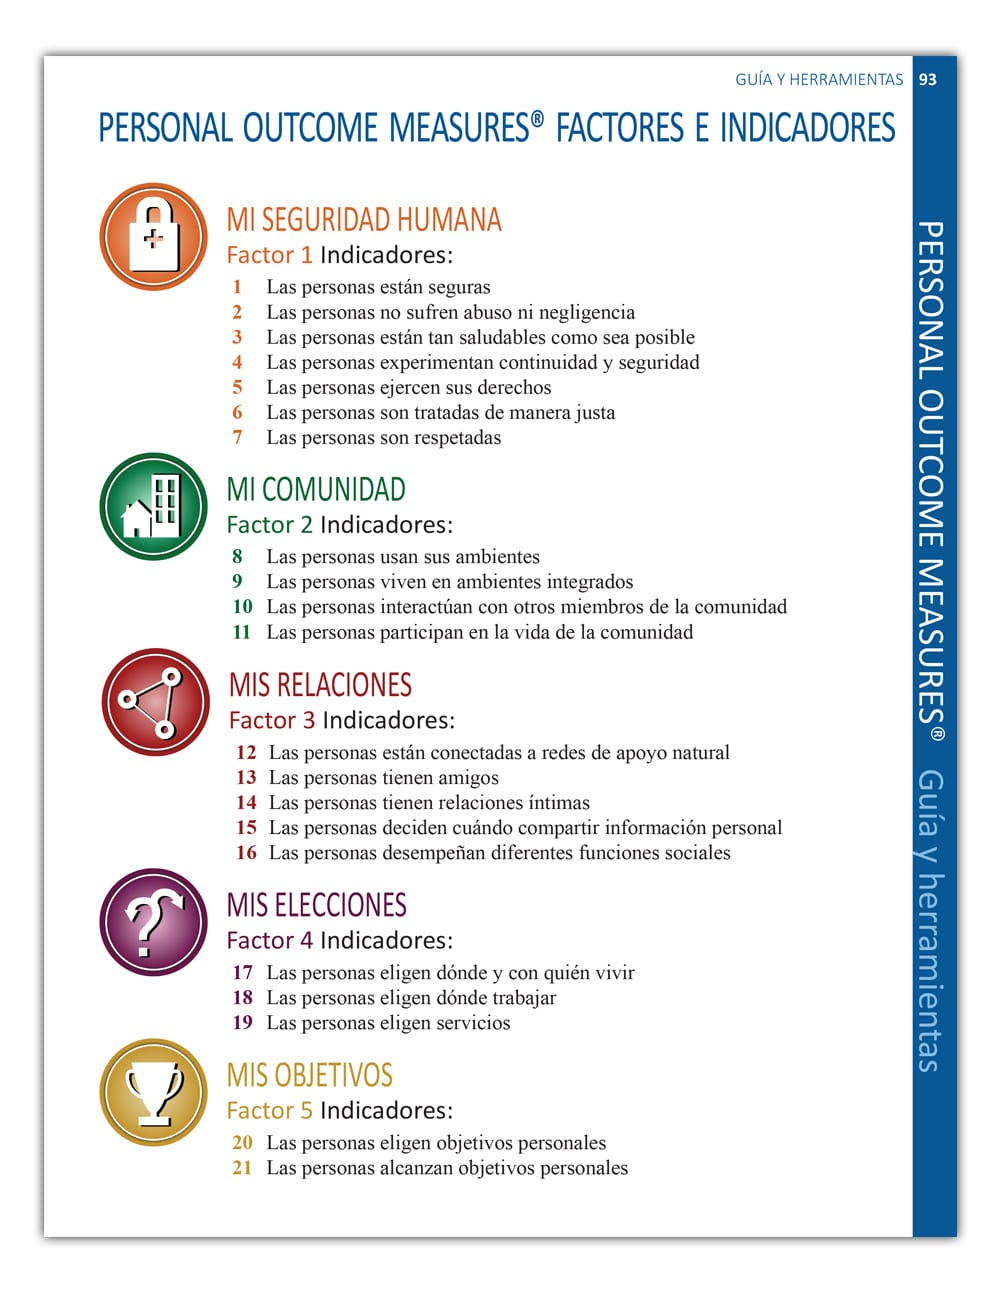 POM Factors and Indicators listing in Spanish